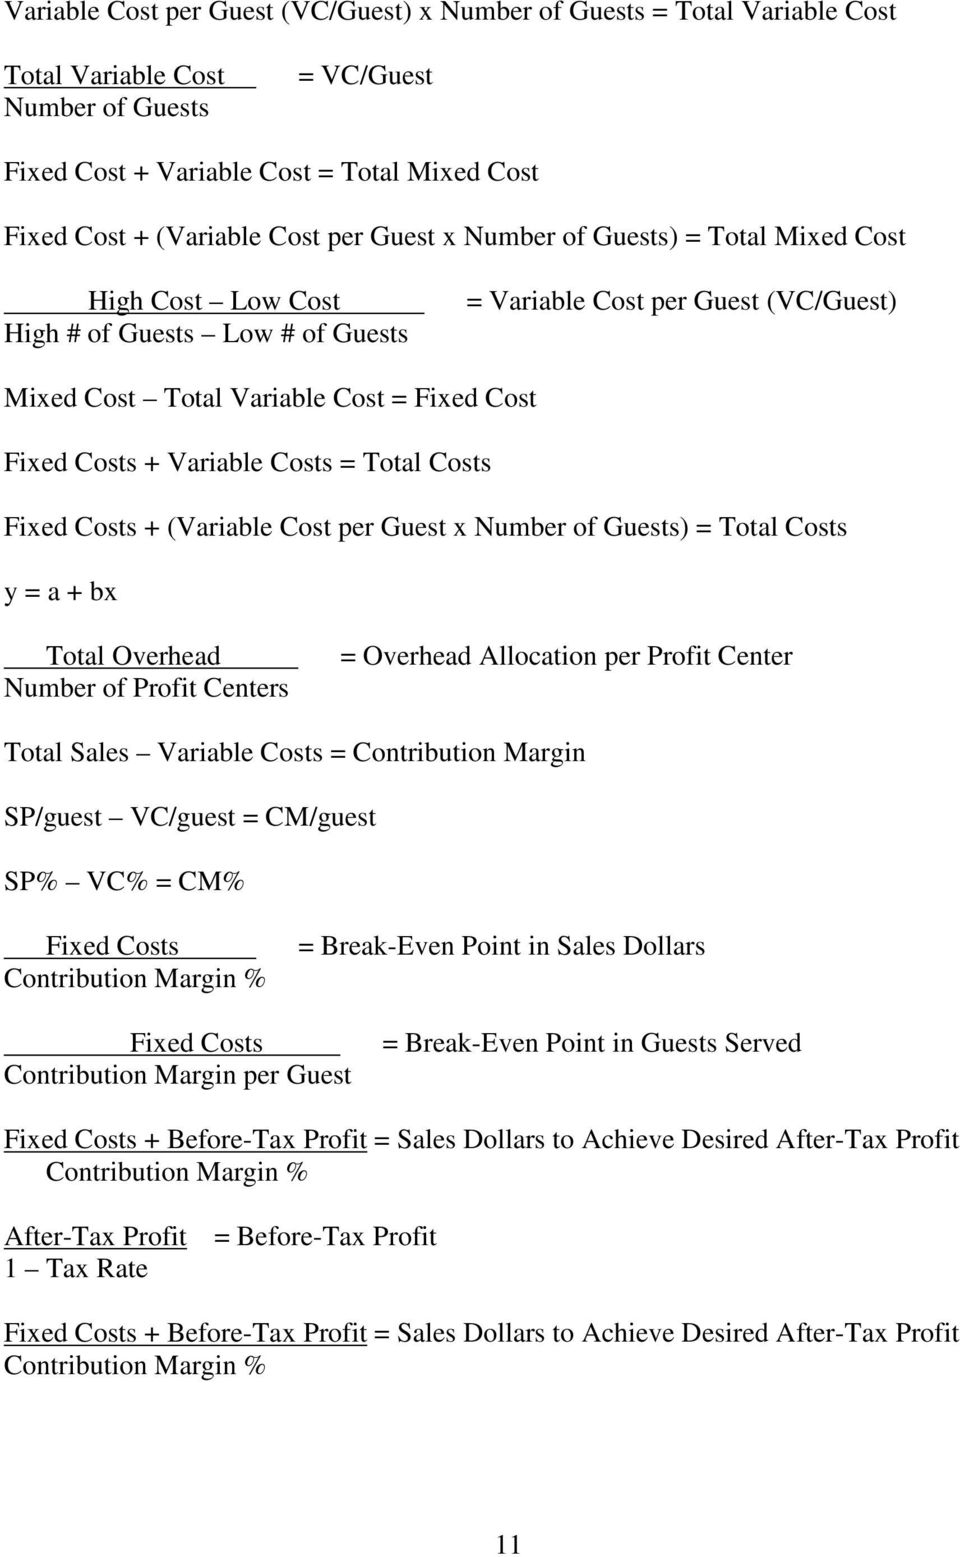 Variable Costs = Total Costs Fixed Costs + (Variable Cost per Guest x Number of Guests) = Total Costs y = a + bx Total Overhead Number of Profit Centers = Overhead Allocation per Profit Center Total